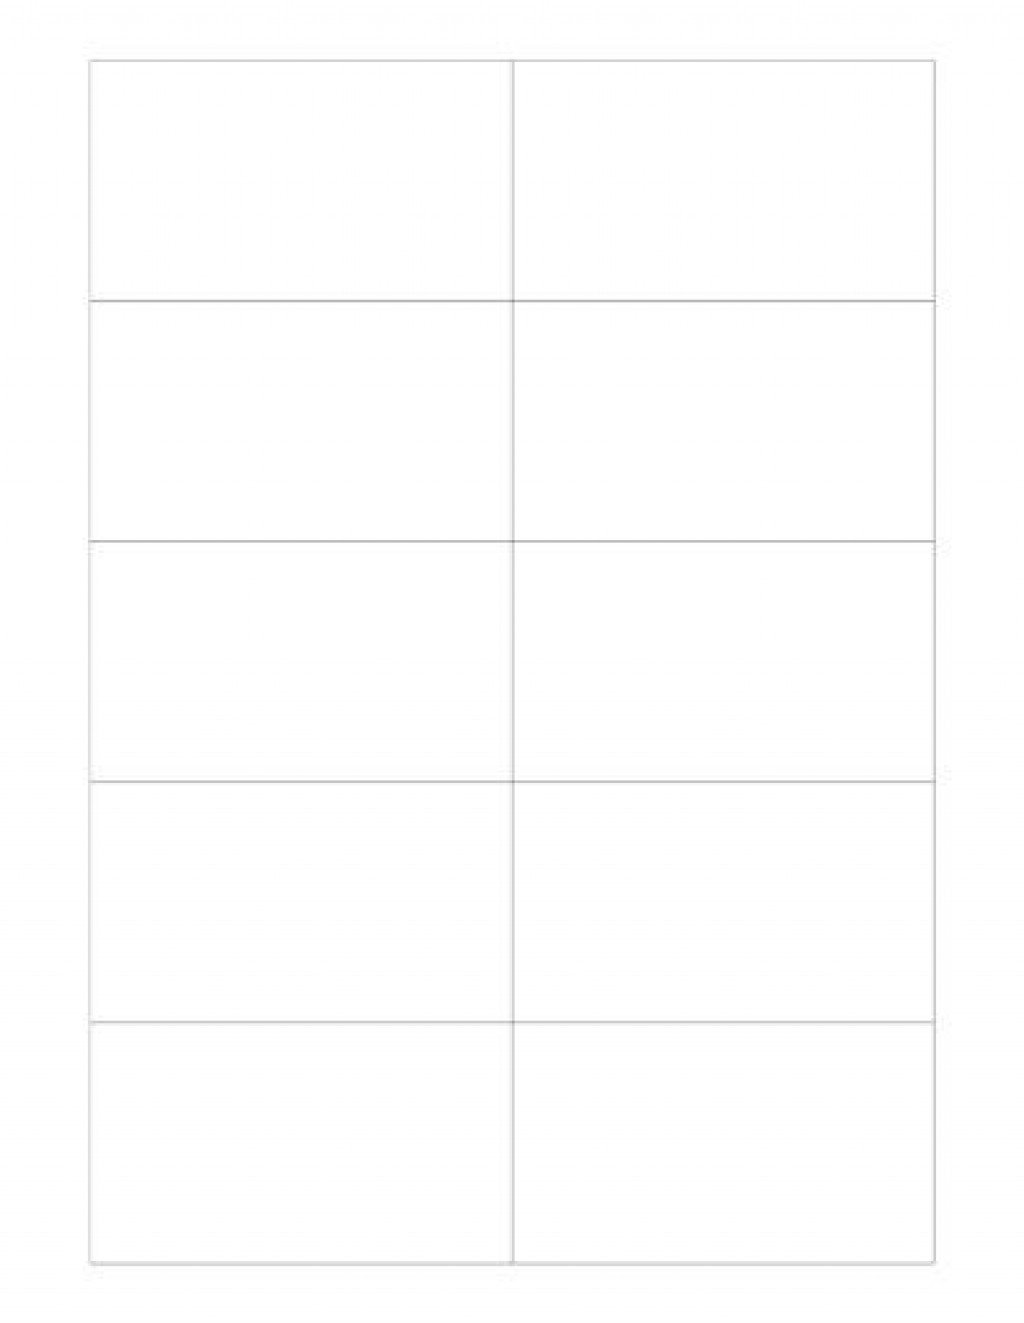 008 Awful Blank Busines Card Template Word Image  Vertical Microsoft 2013 AveryLarge